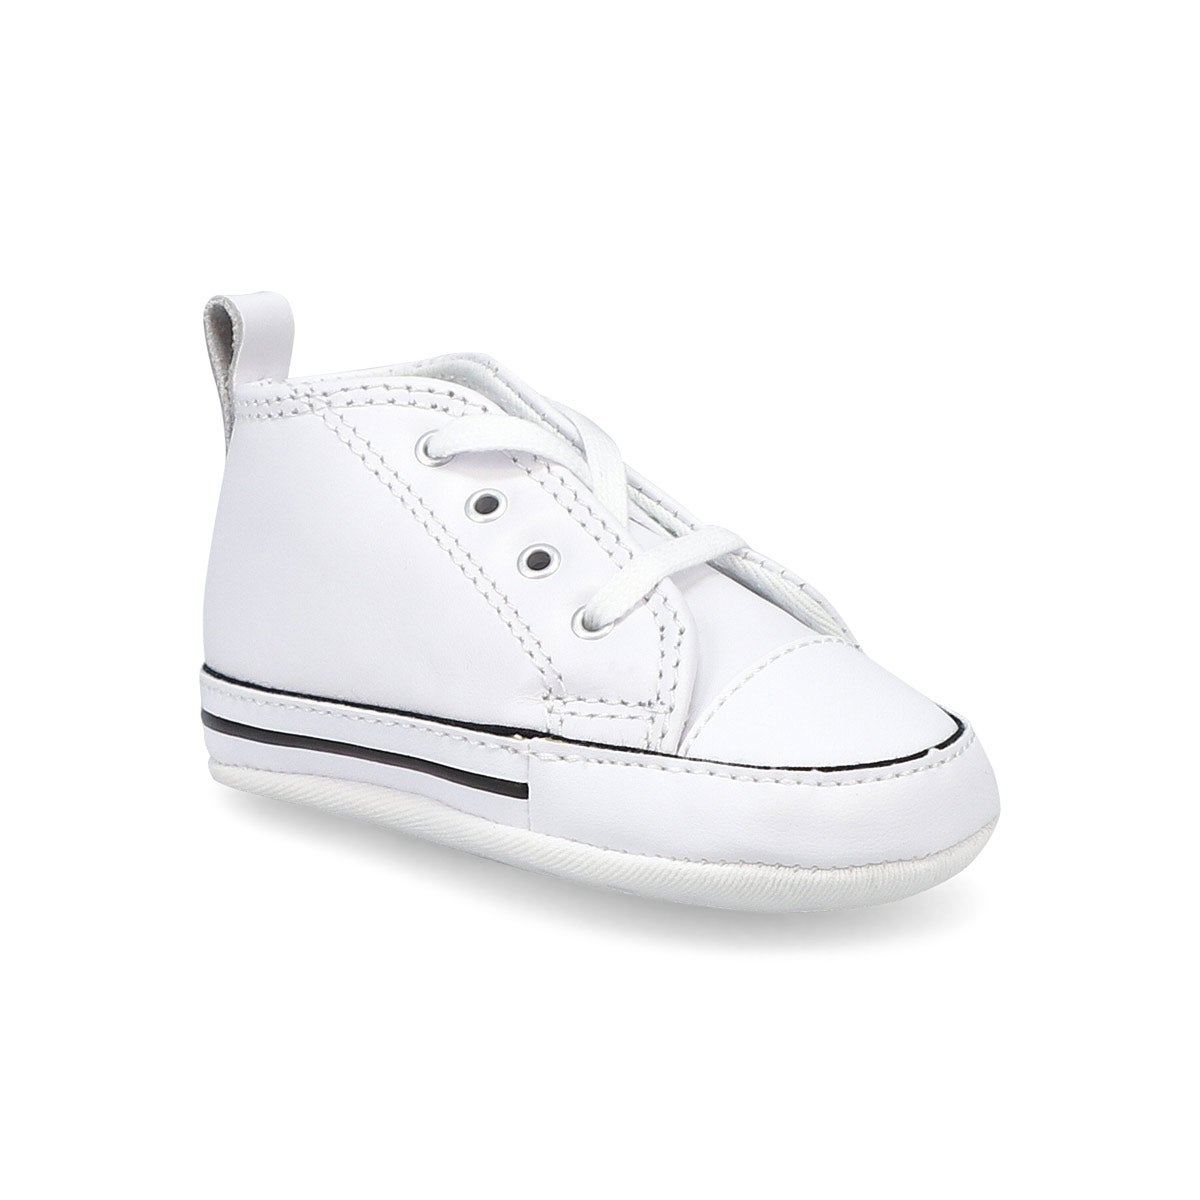 Infants' ALL STAR CRIB white leather sneakers